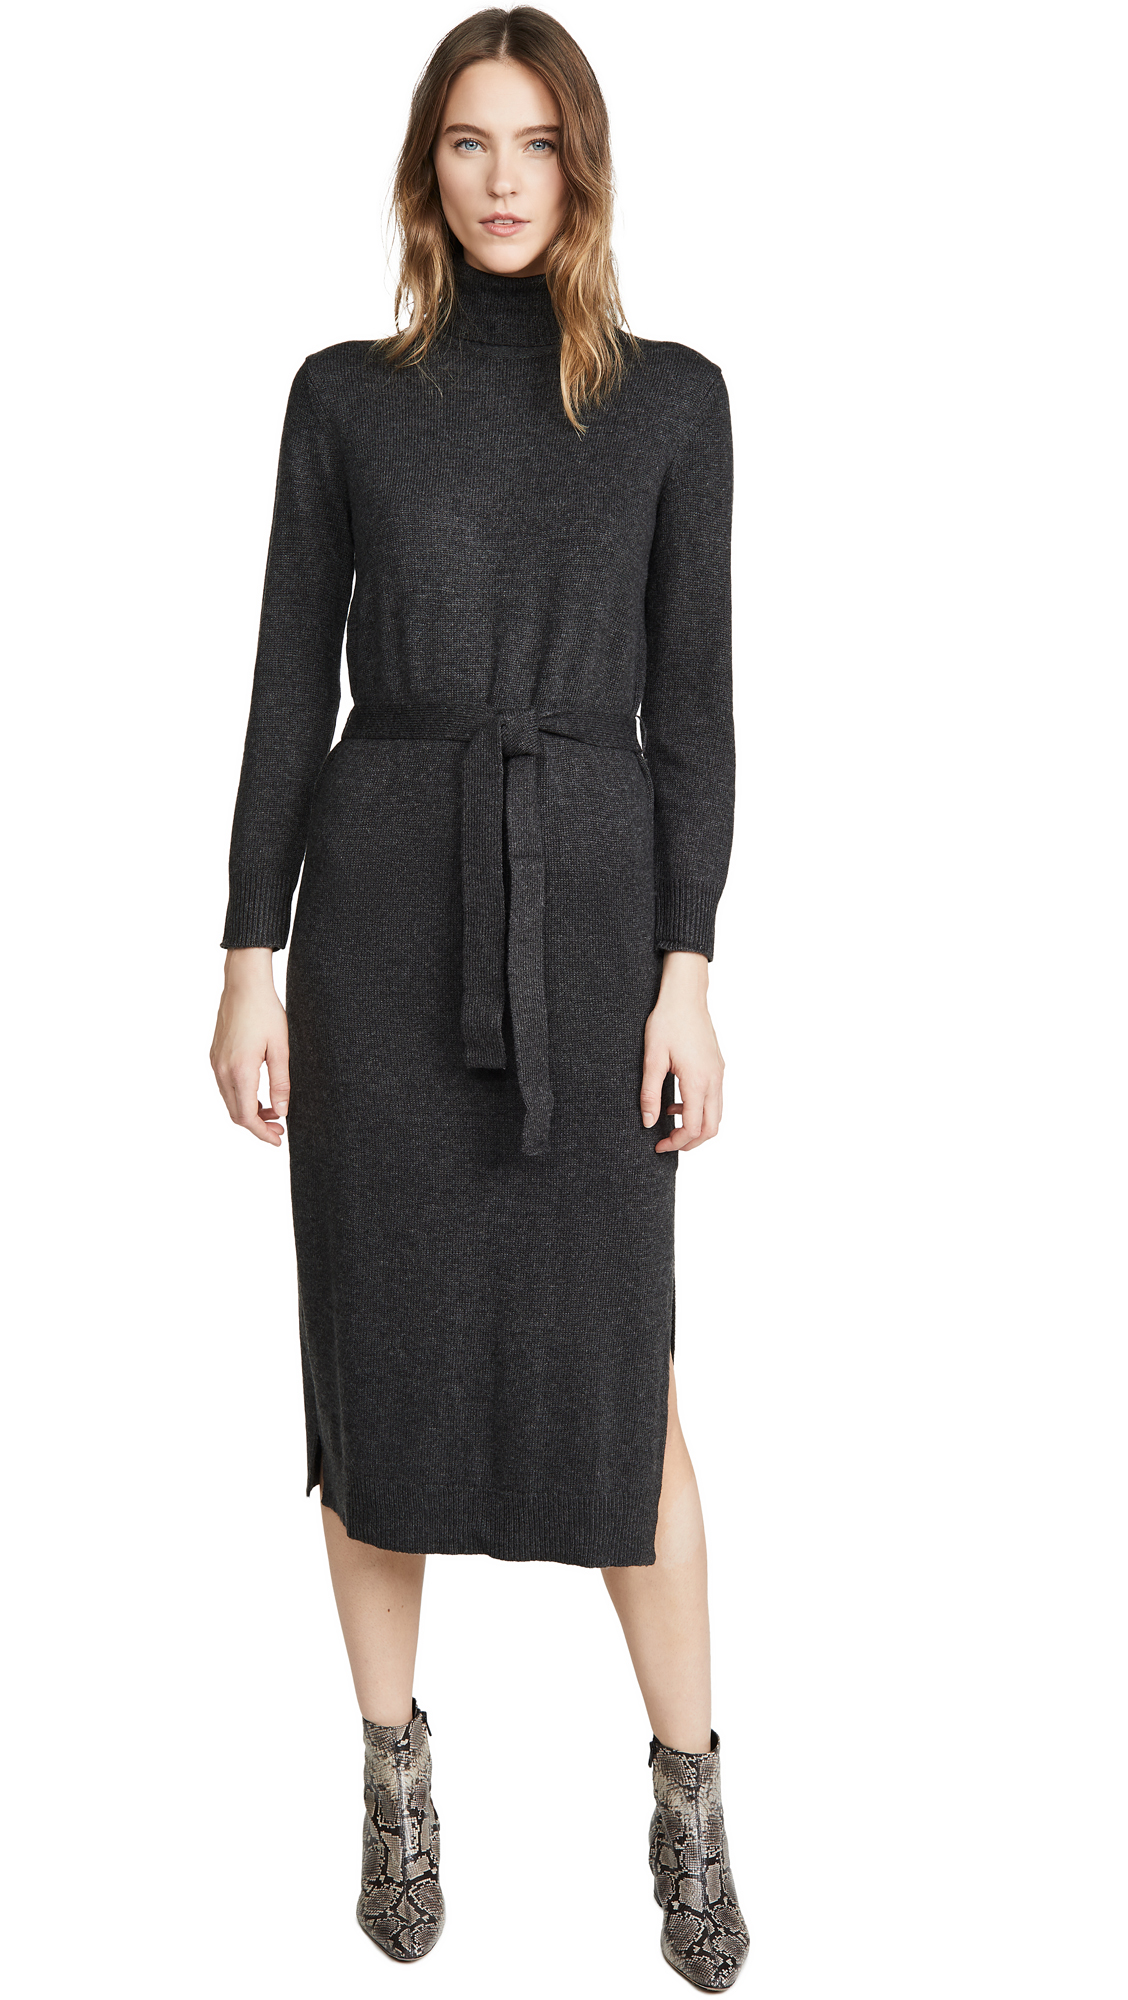 Splendid Elton Wrap Dress – 35% Off Sale